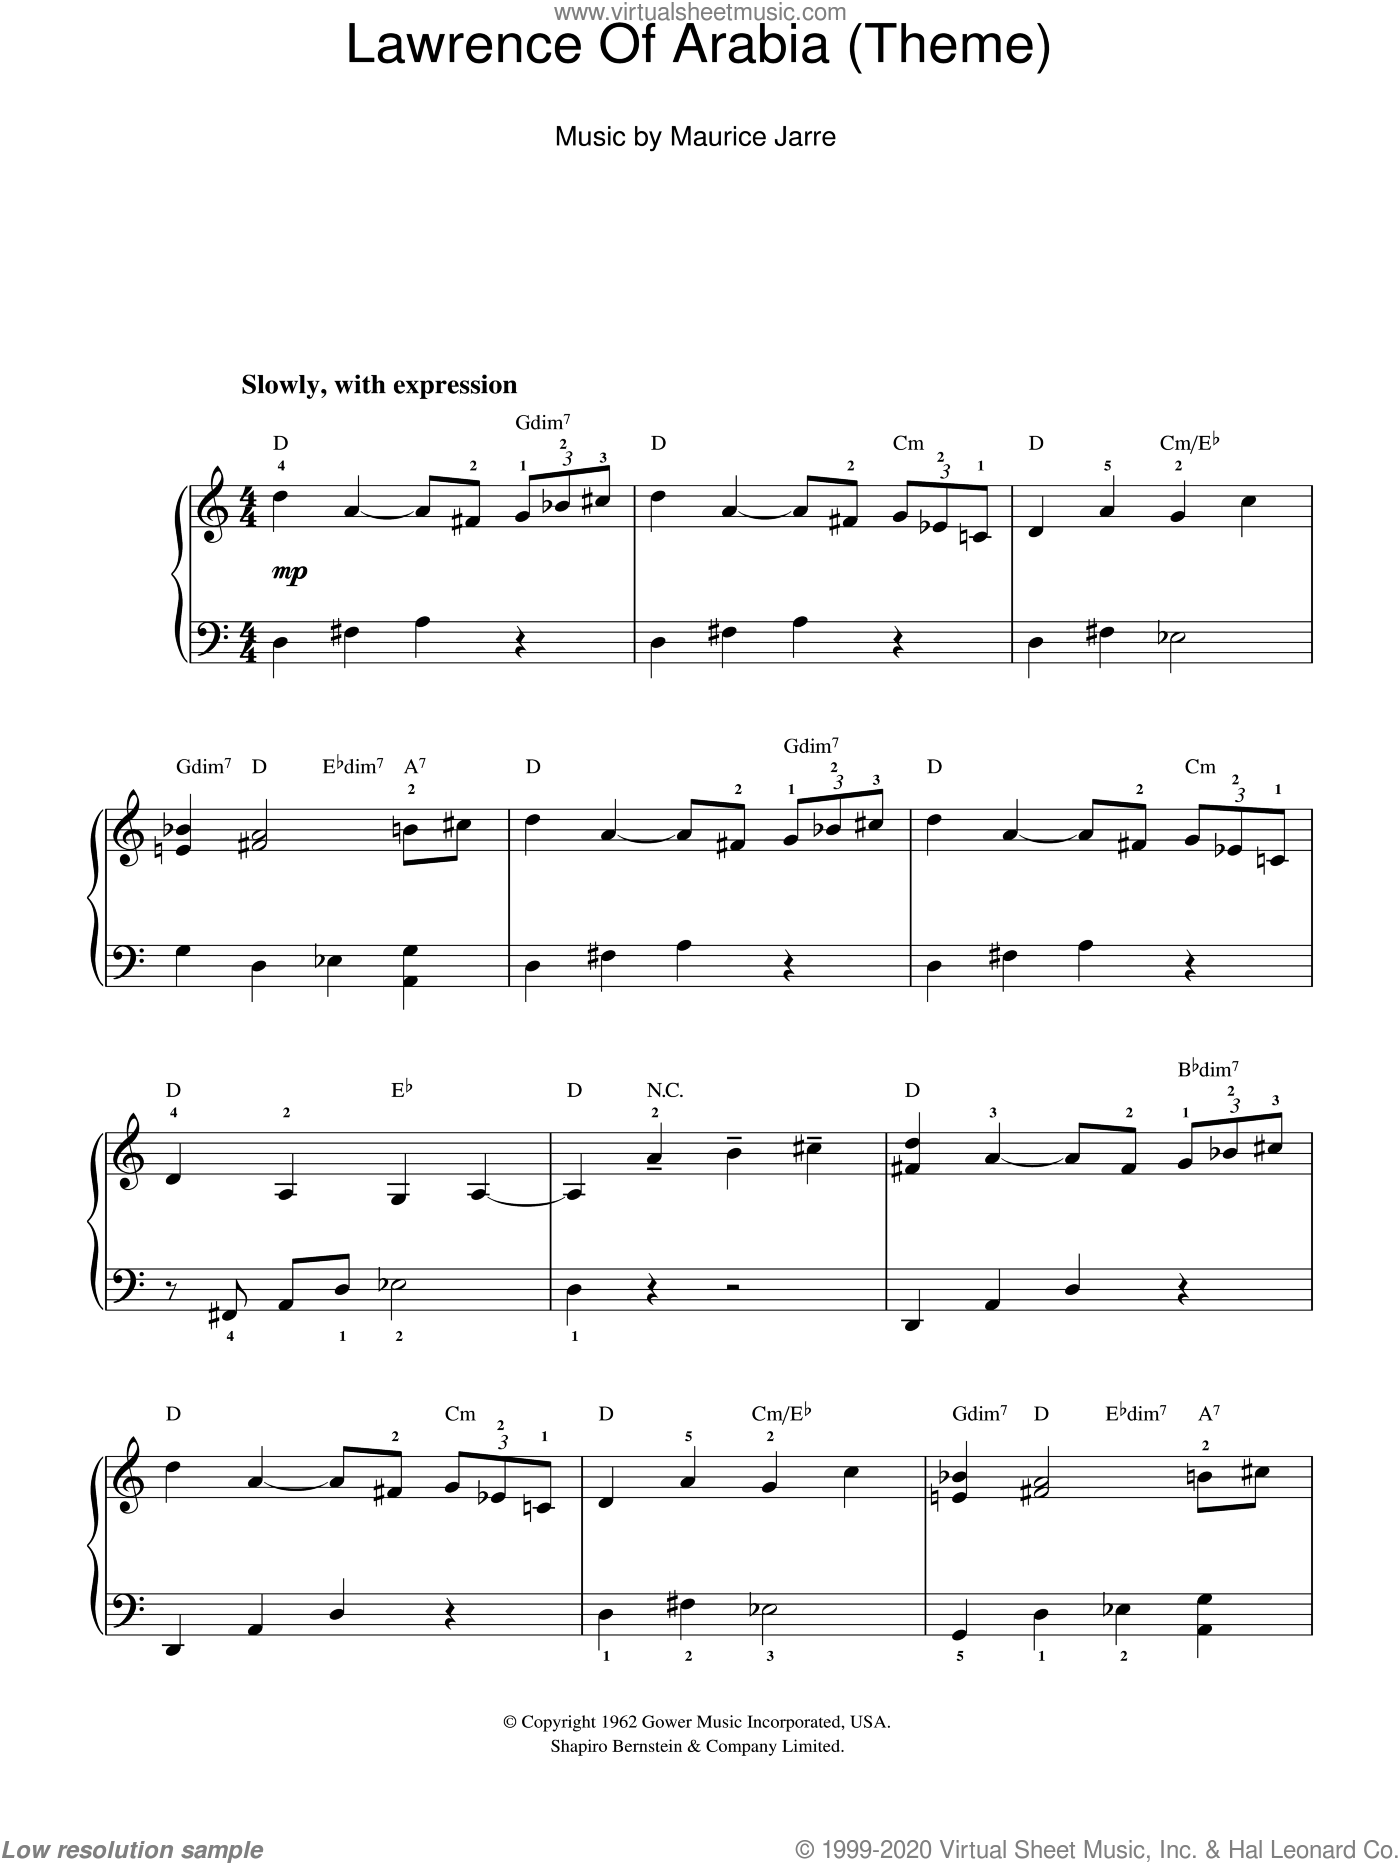 Lawrence Of Arabia (Main Titles), (easy) sheet music for piano solo by Maurice Jarre, easy skill level